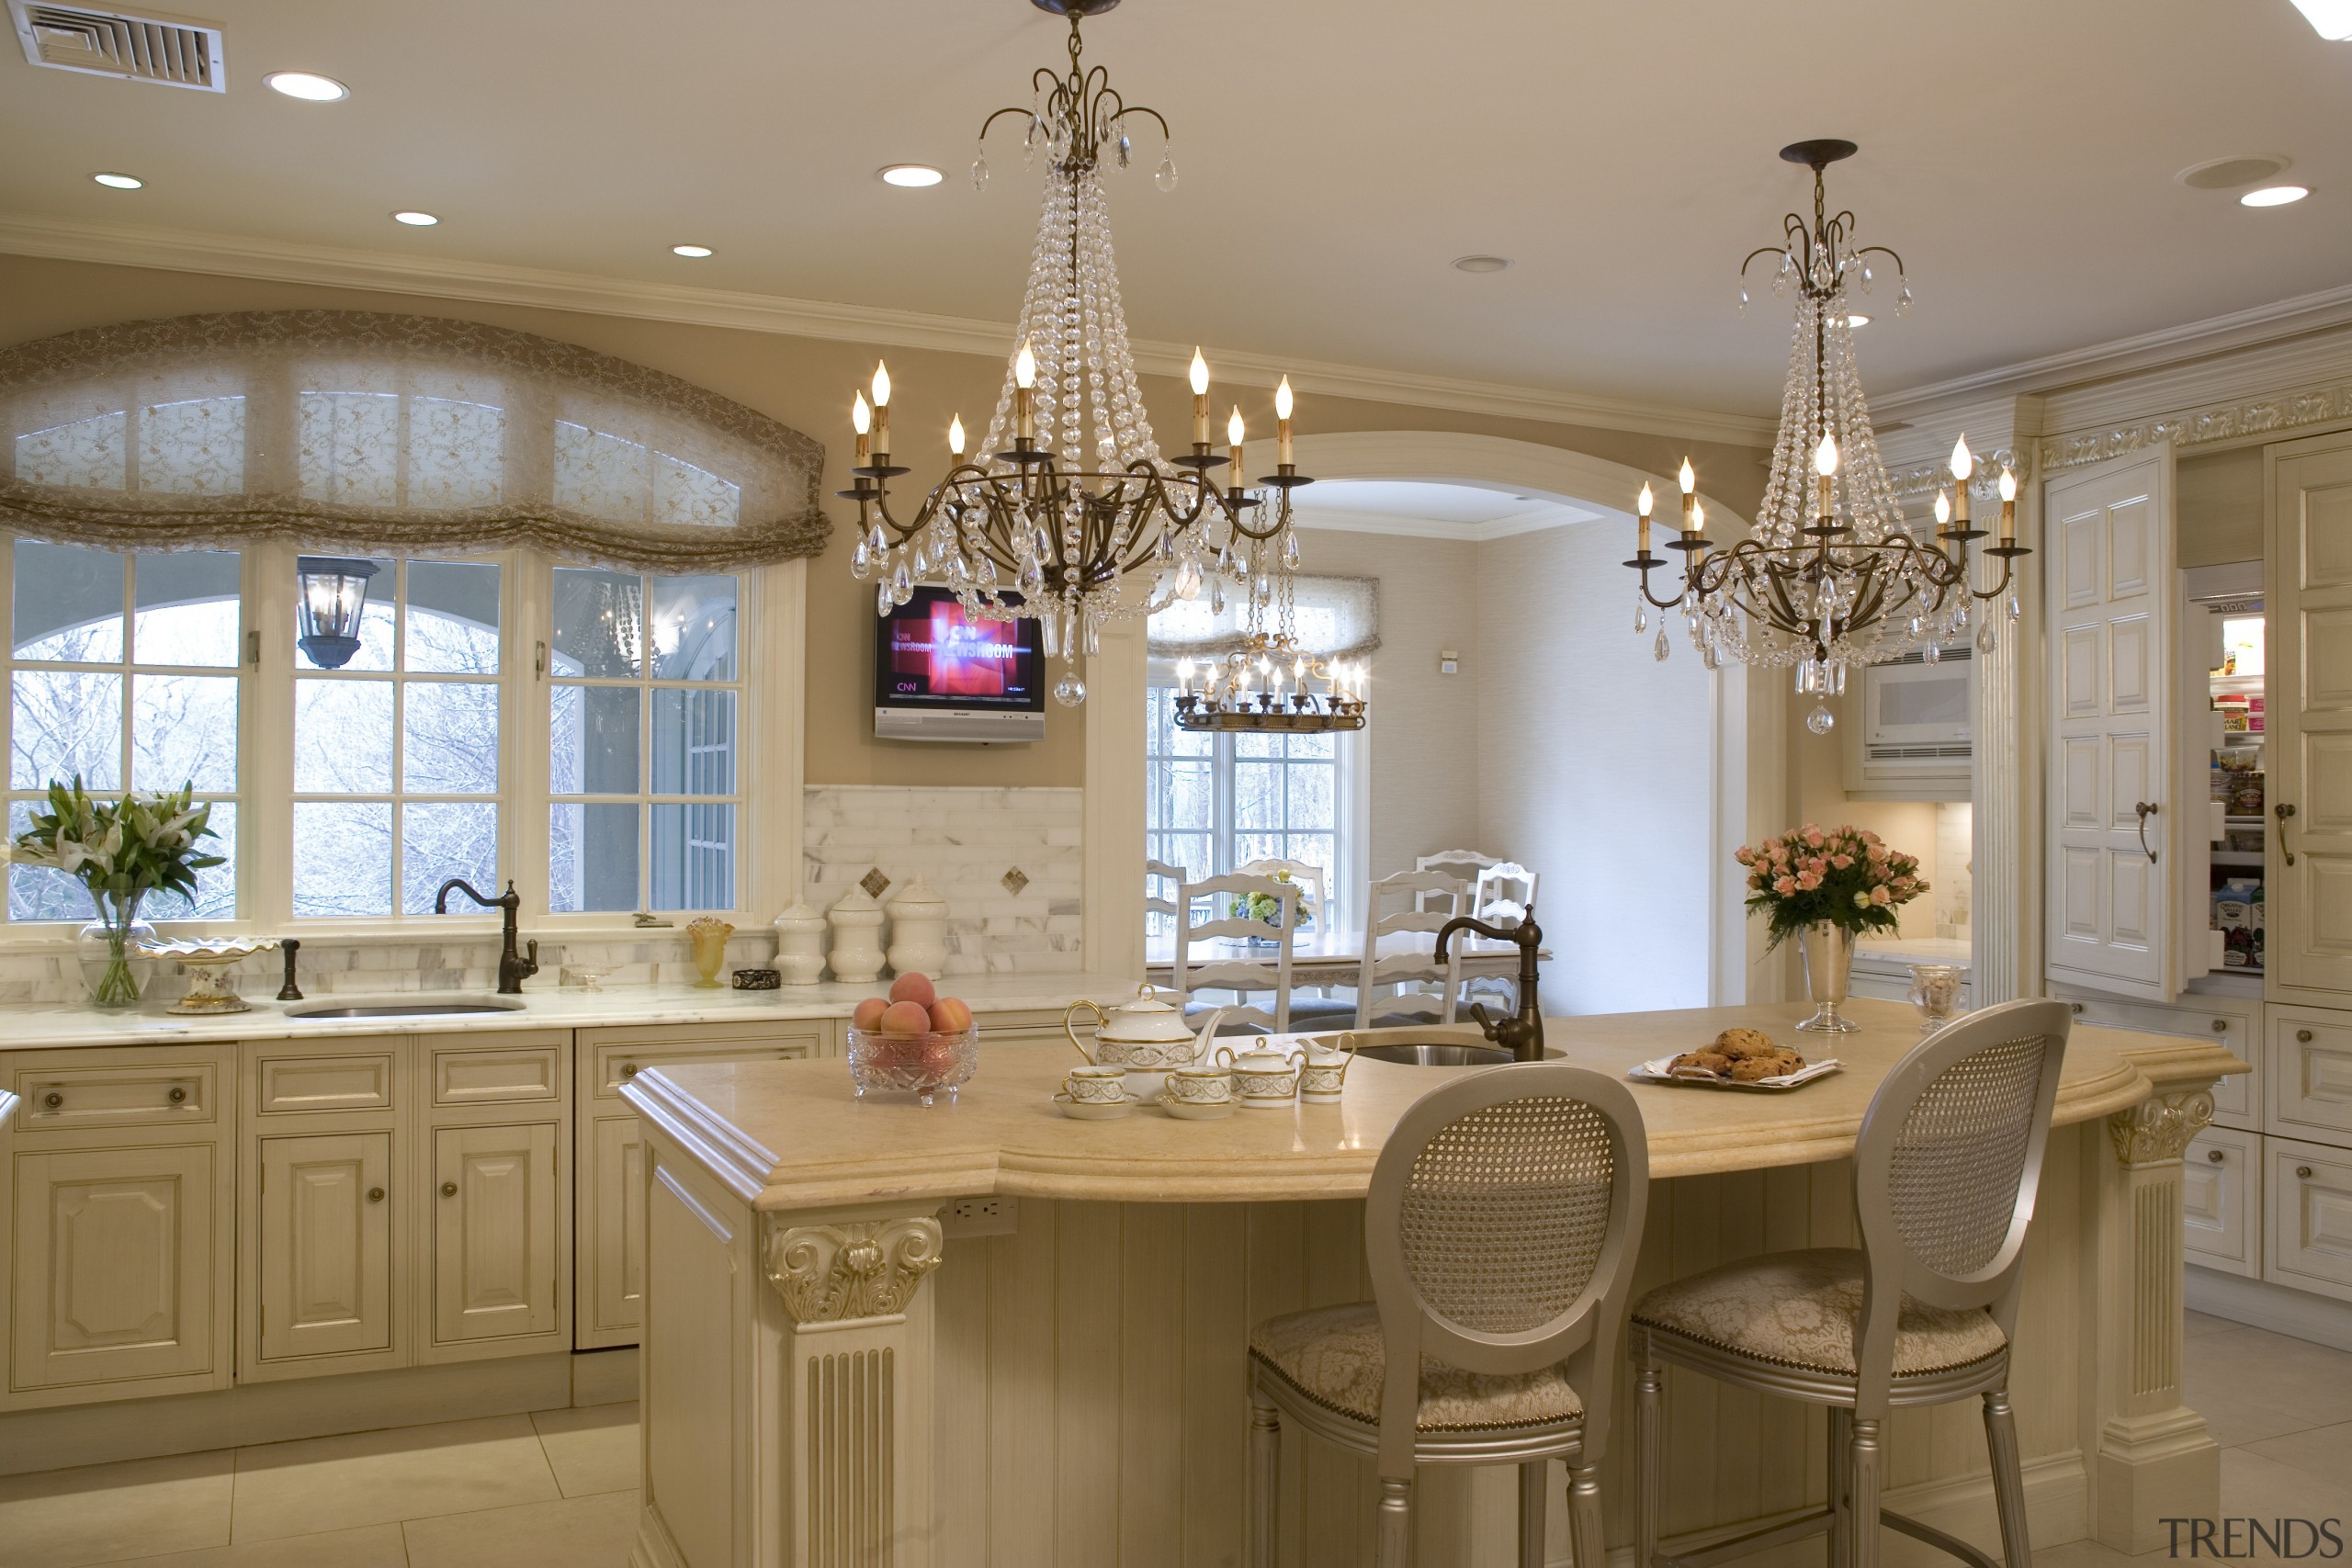 A calacutta marble tiled splashback and matching countertops cabinetry, ceiling, countertop, cuisine classique, dining room, estate, home, interior design, kitchen, room, brown